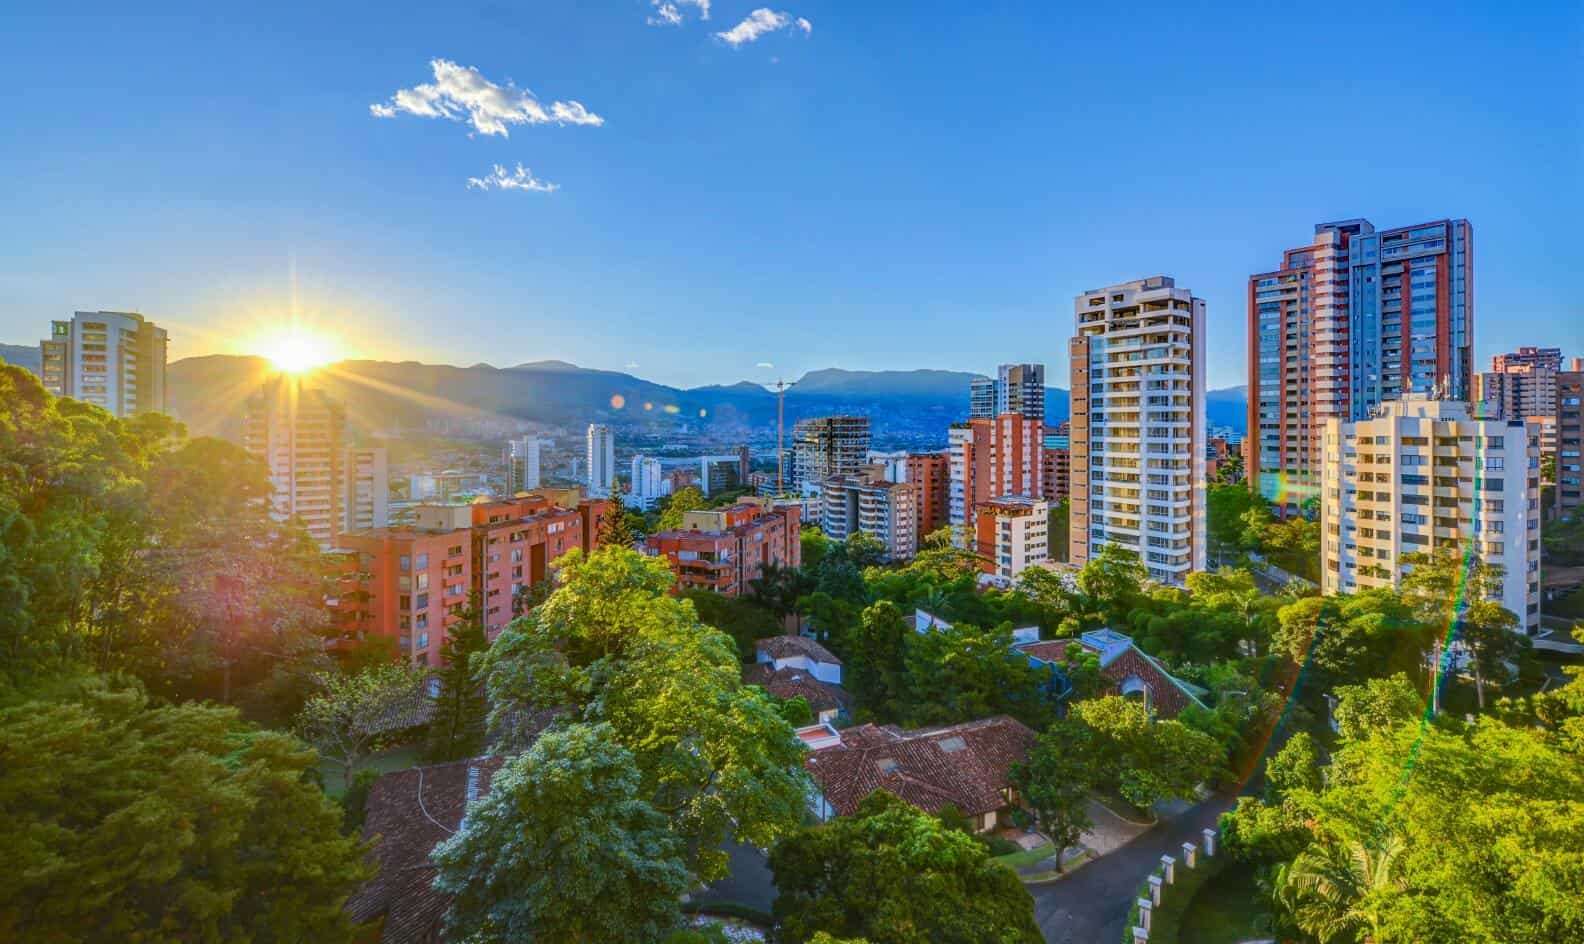 Top 5 Things to do in Medellin